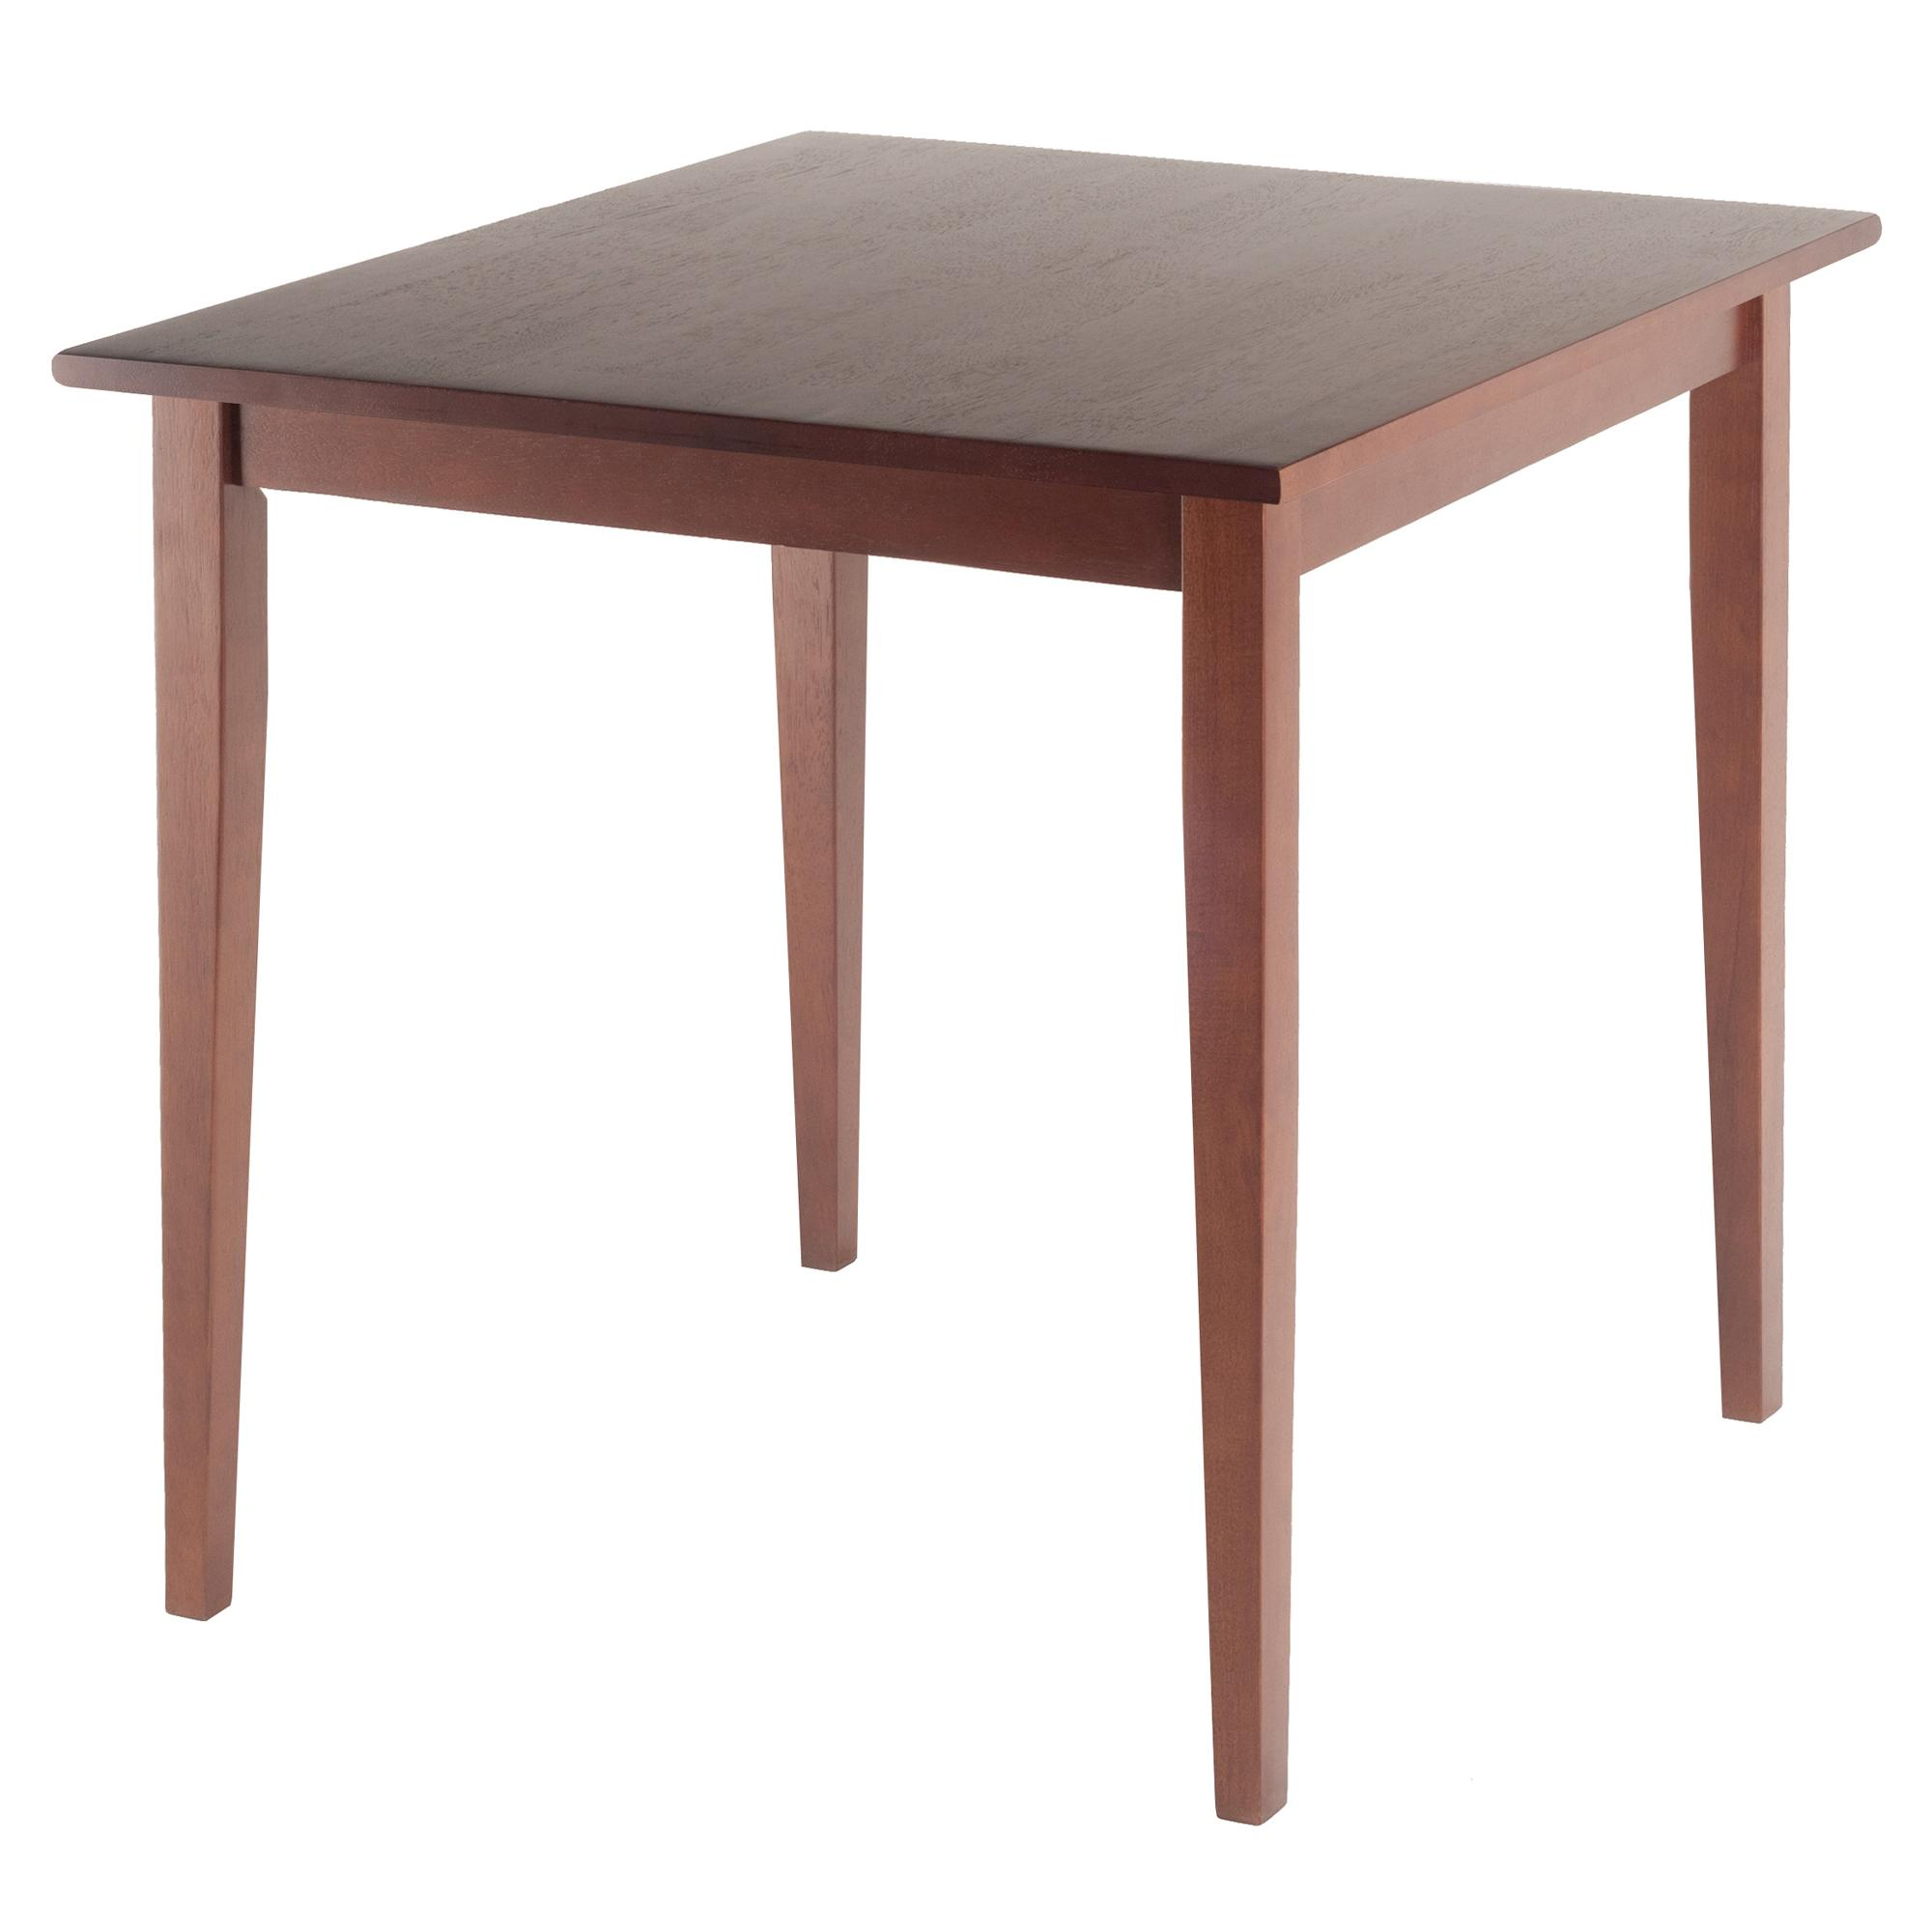 Winsome wood groveland square dining table in antique for M and s dining